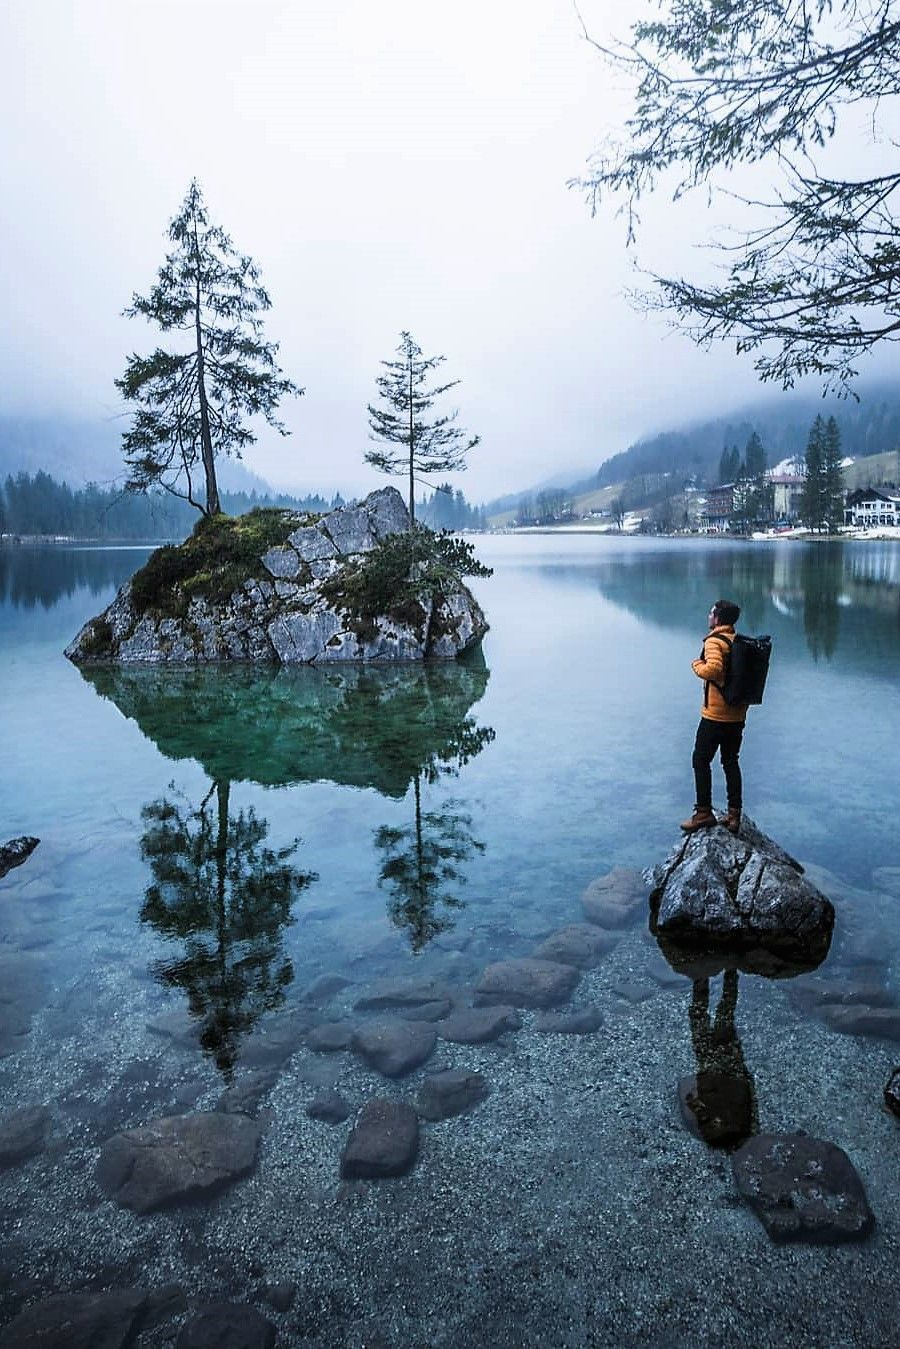 Lund All Black By Kapten Son Picture By Luke Jclark Travel Explore Distant Places Wanderlust Wild And Free Trav Travel Free Camping Free Travel